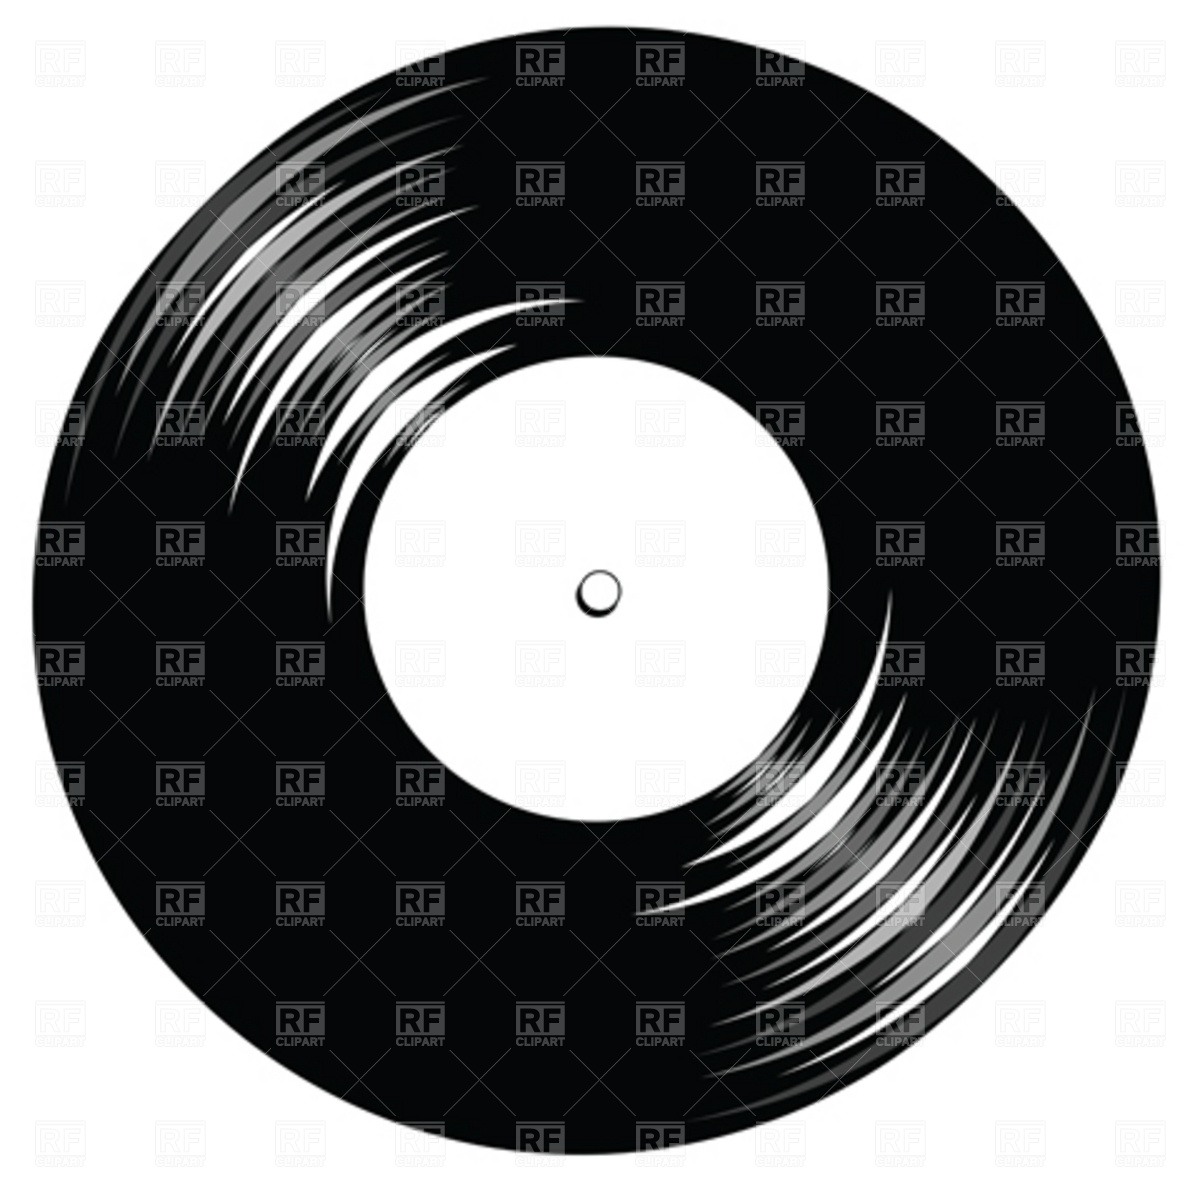 813 Record free clipart.